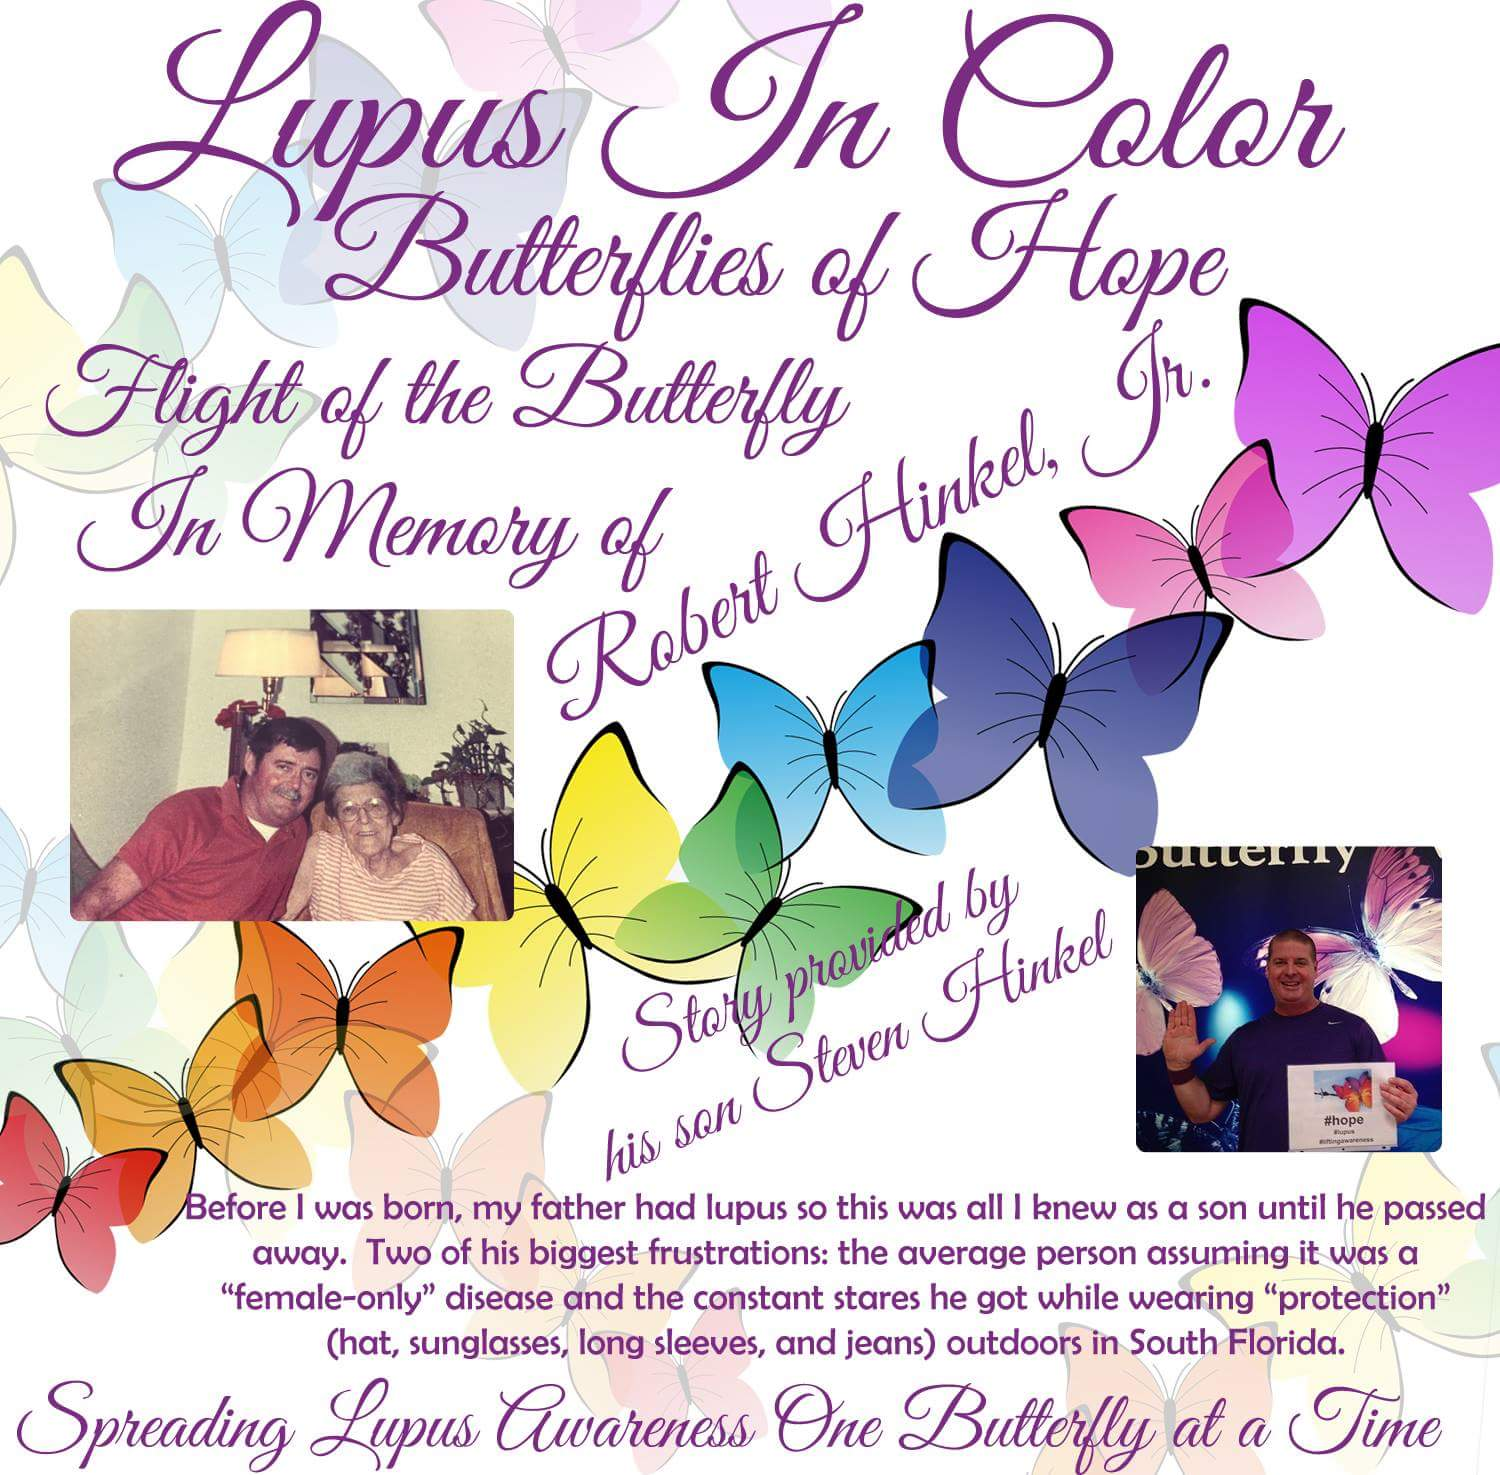 Butterflies of hope page 5 lupus in color image biocorpaavc Image collections